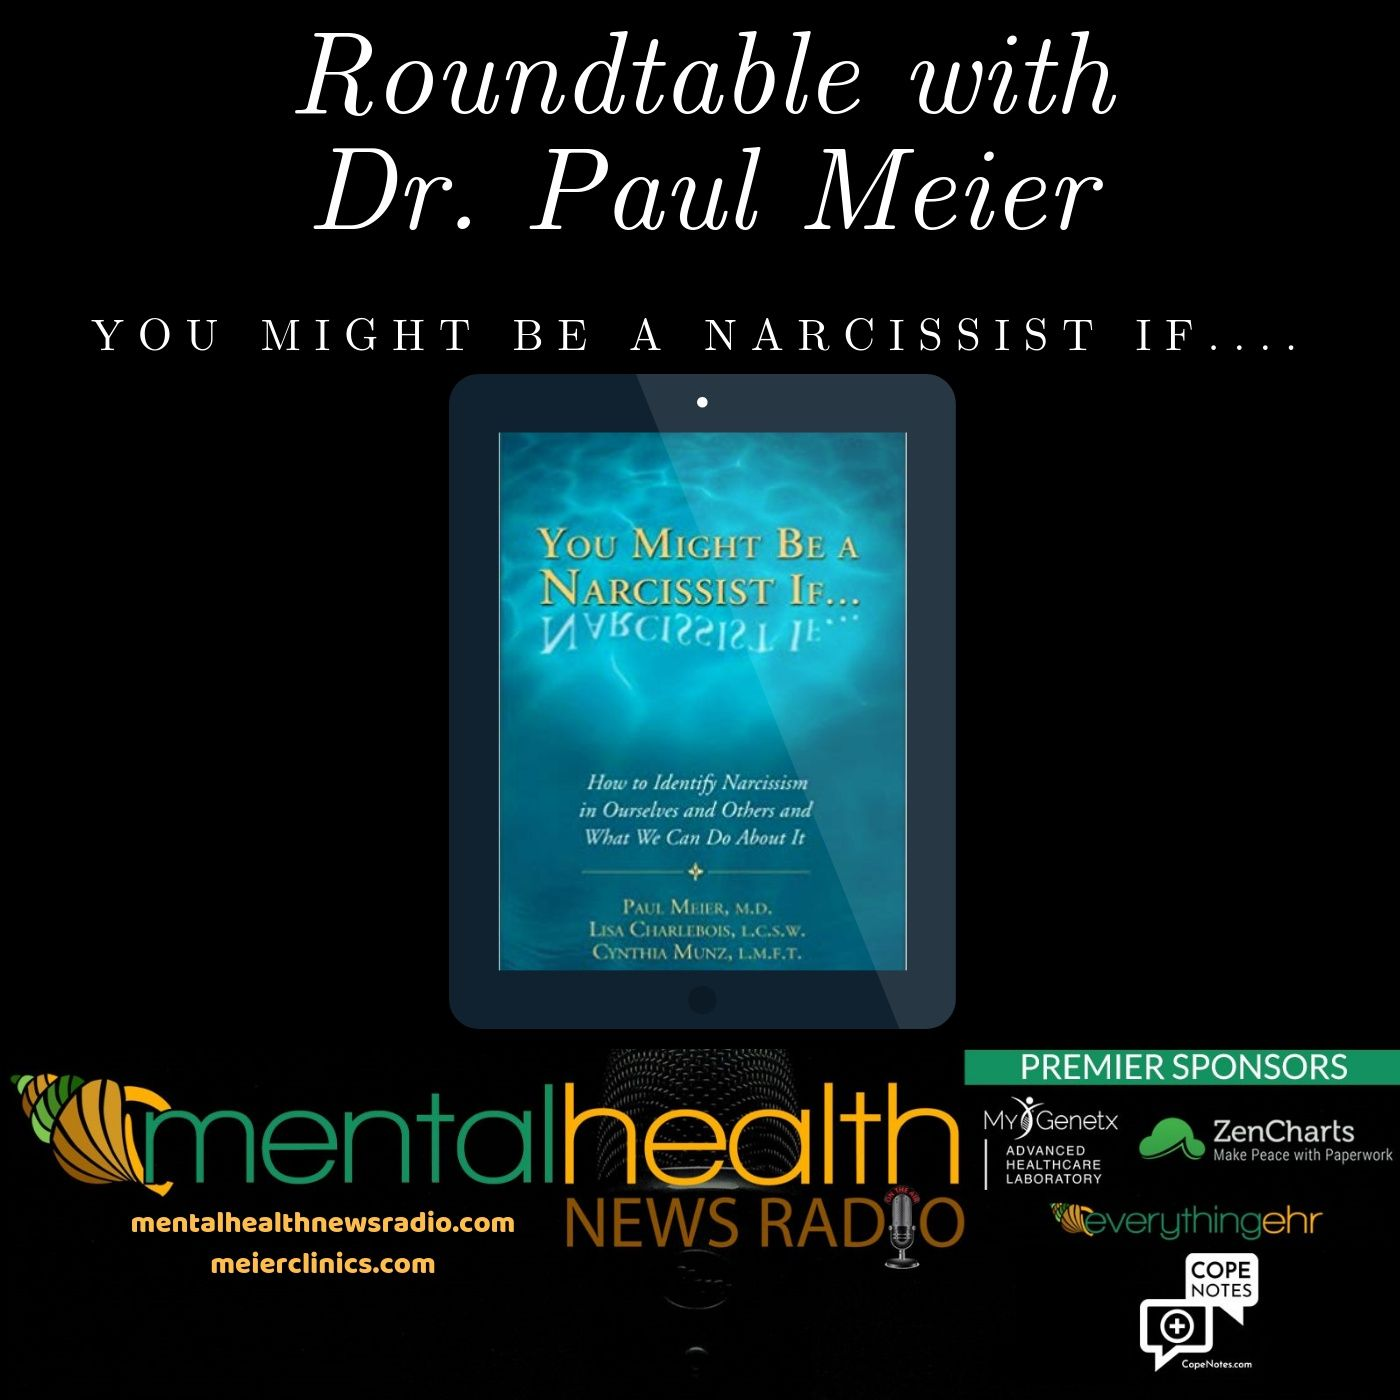 Mental Health News Radio - Roundtable with Dr. Paul Meier: You Might Be A Narcissist If